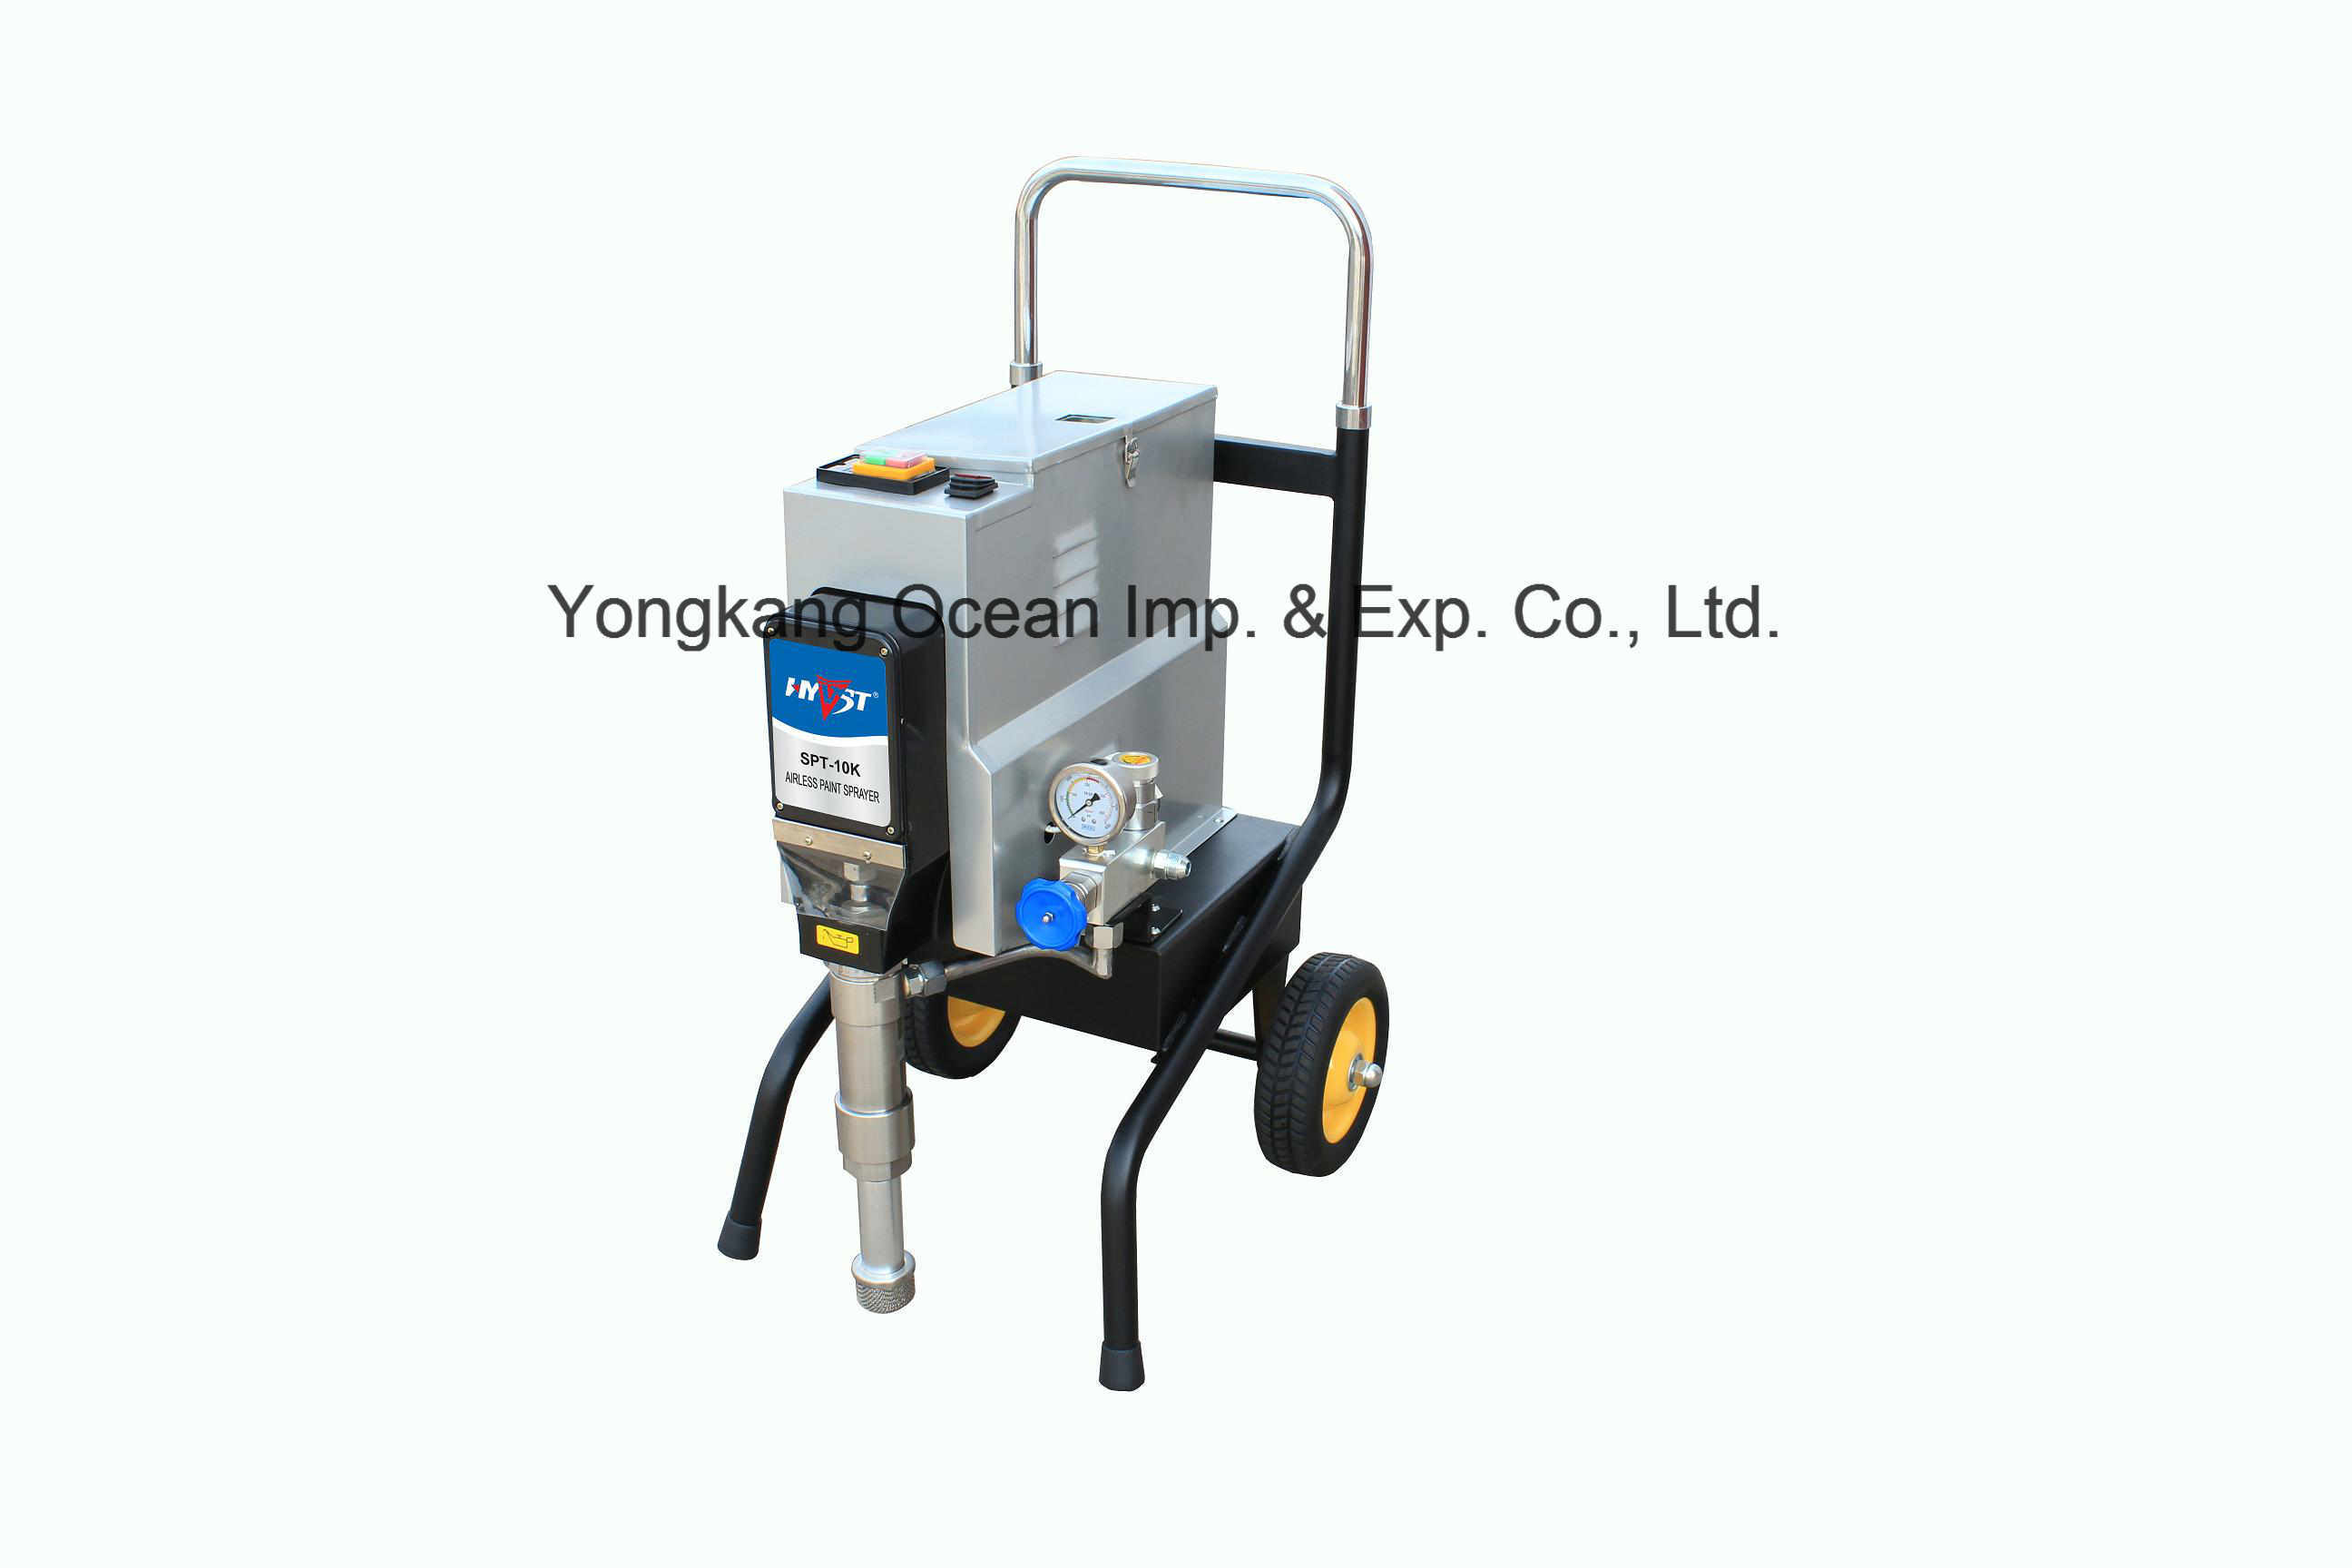 Hyvst Electric High Pressure Airless Paint Sprayer Spt-10k